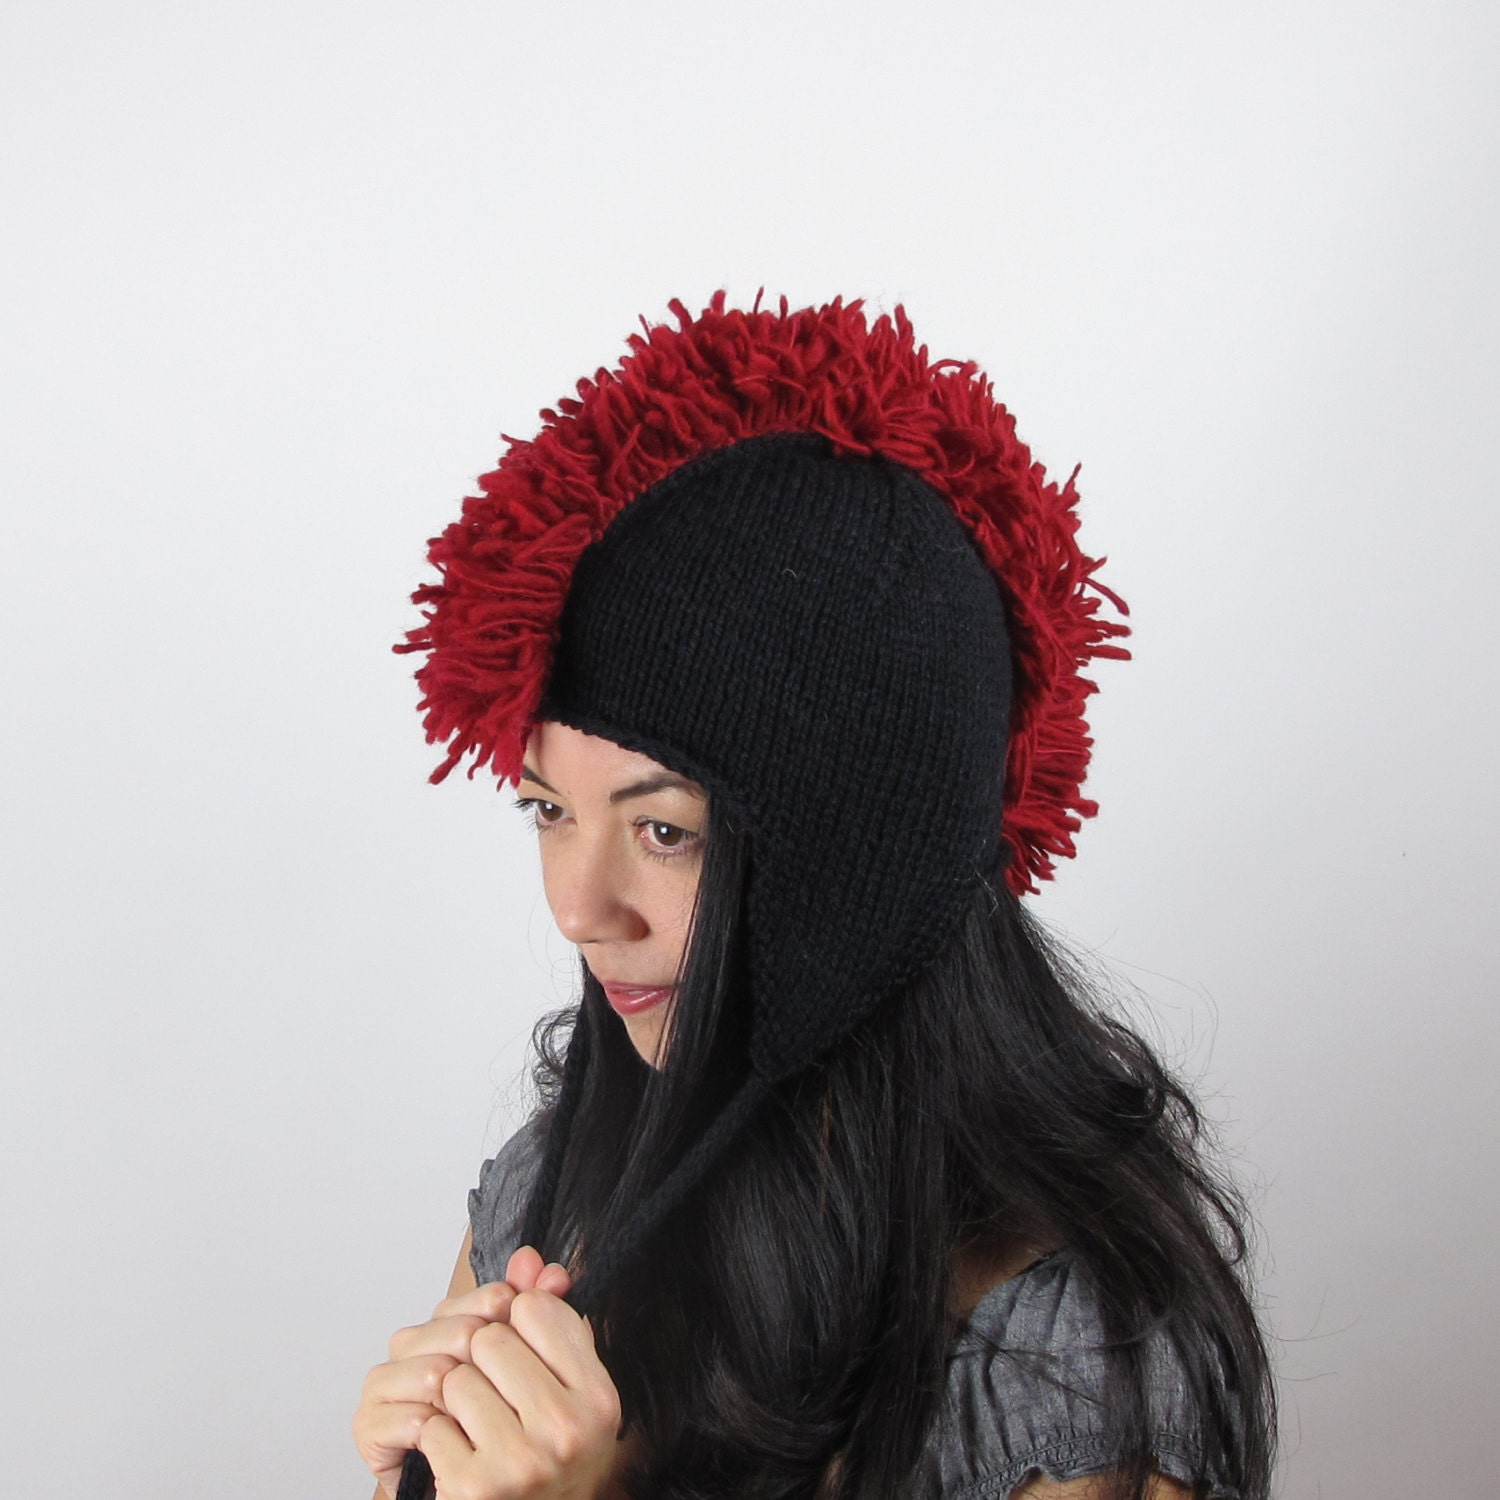 5913c13baaf Red mohawk hat cherry red ear flap hat wool hand knit jpg 1500x1500 Red  knit mohawk